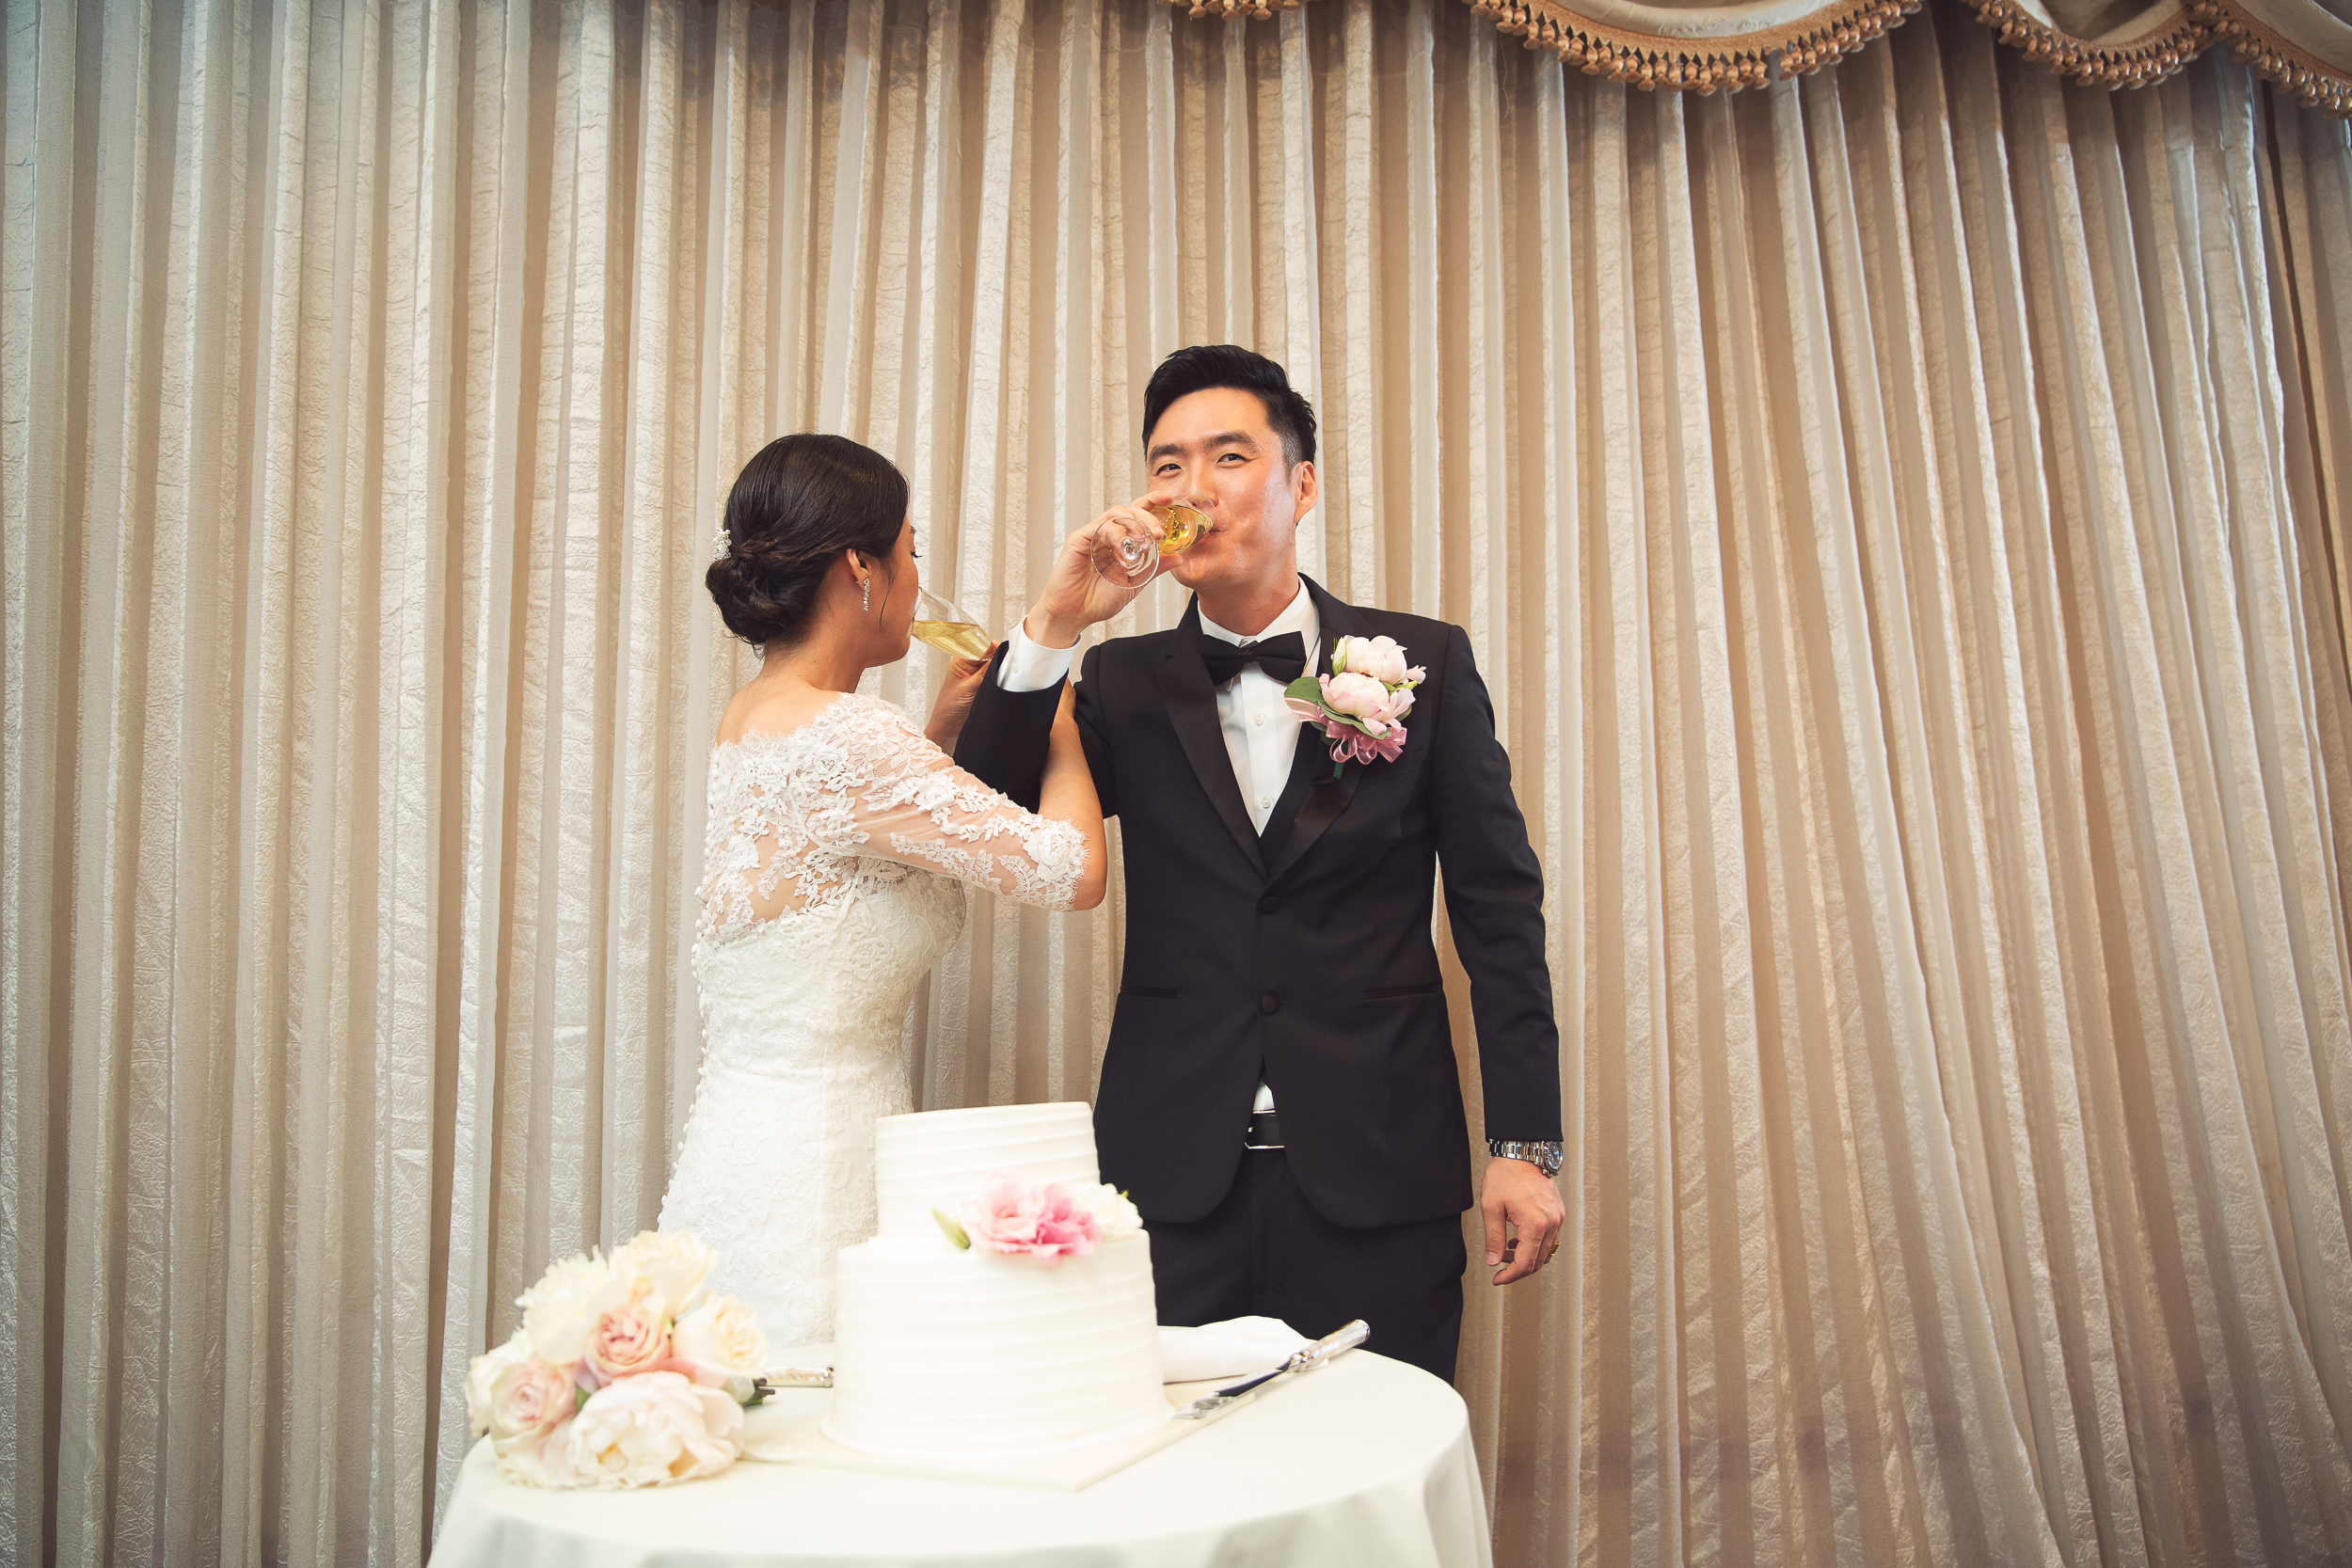 78_Ji Young Choi & Kyungmin Song Wedding